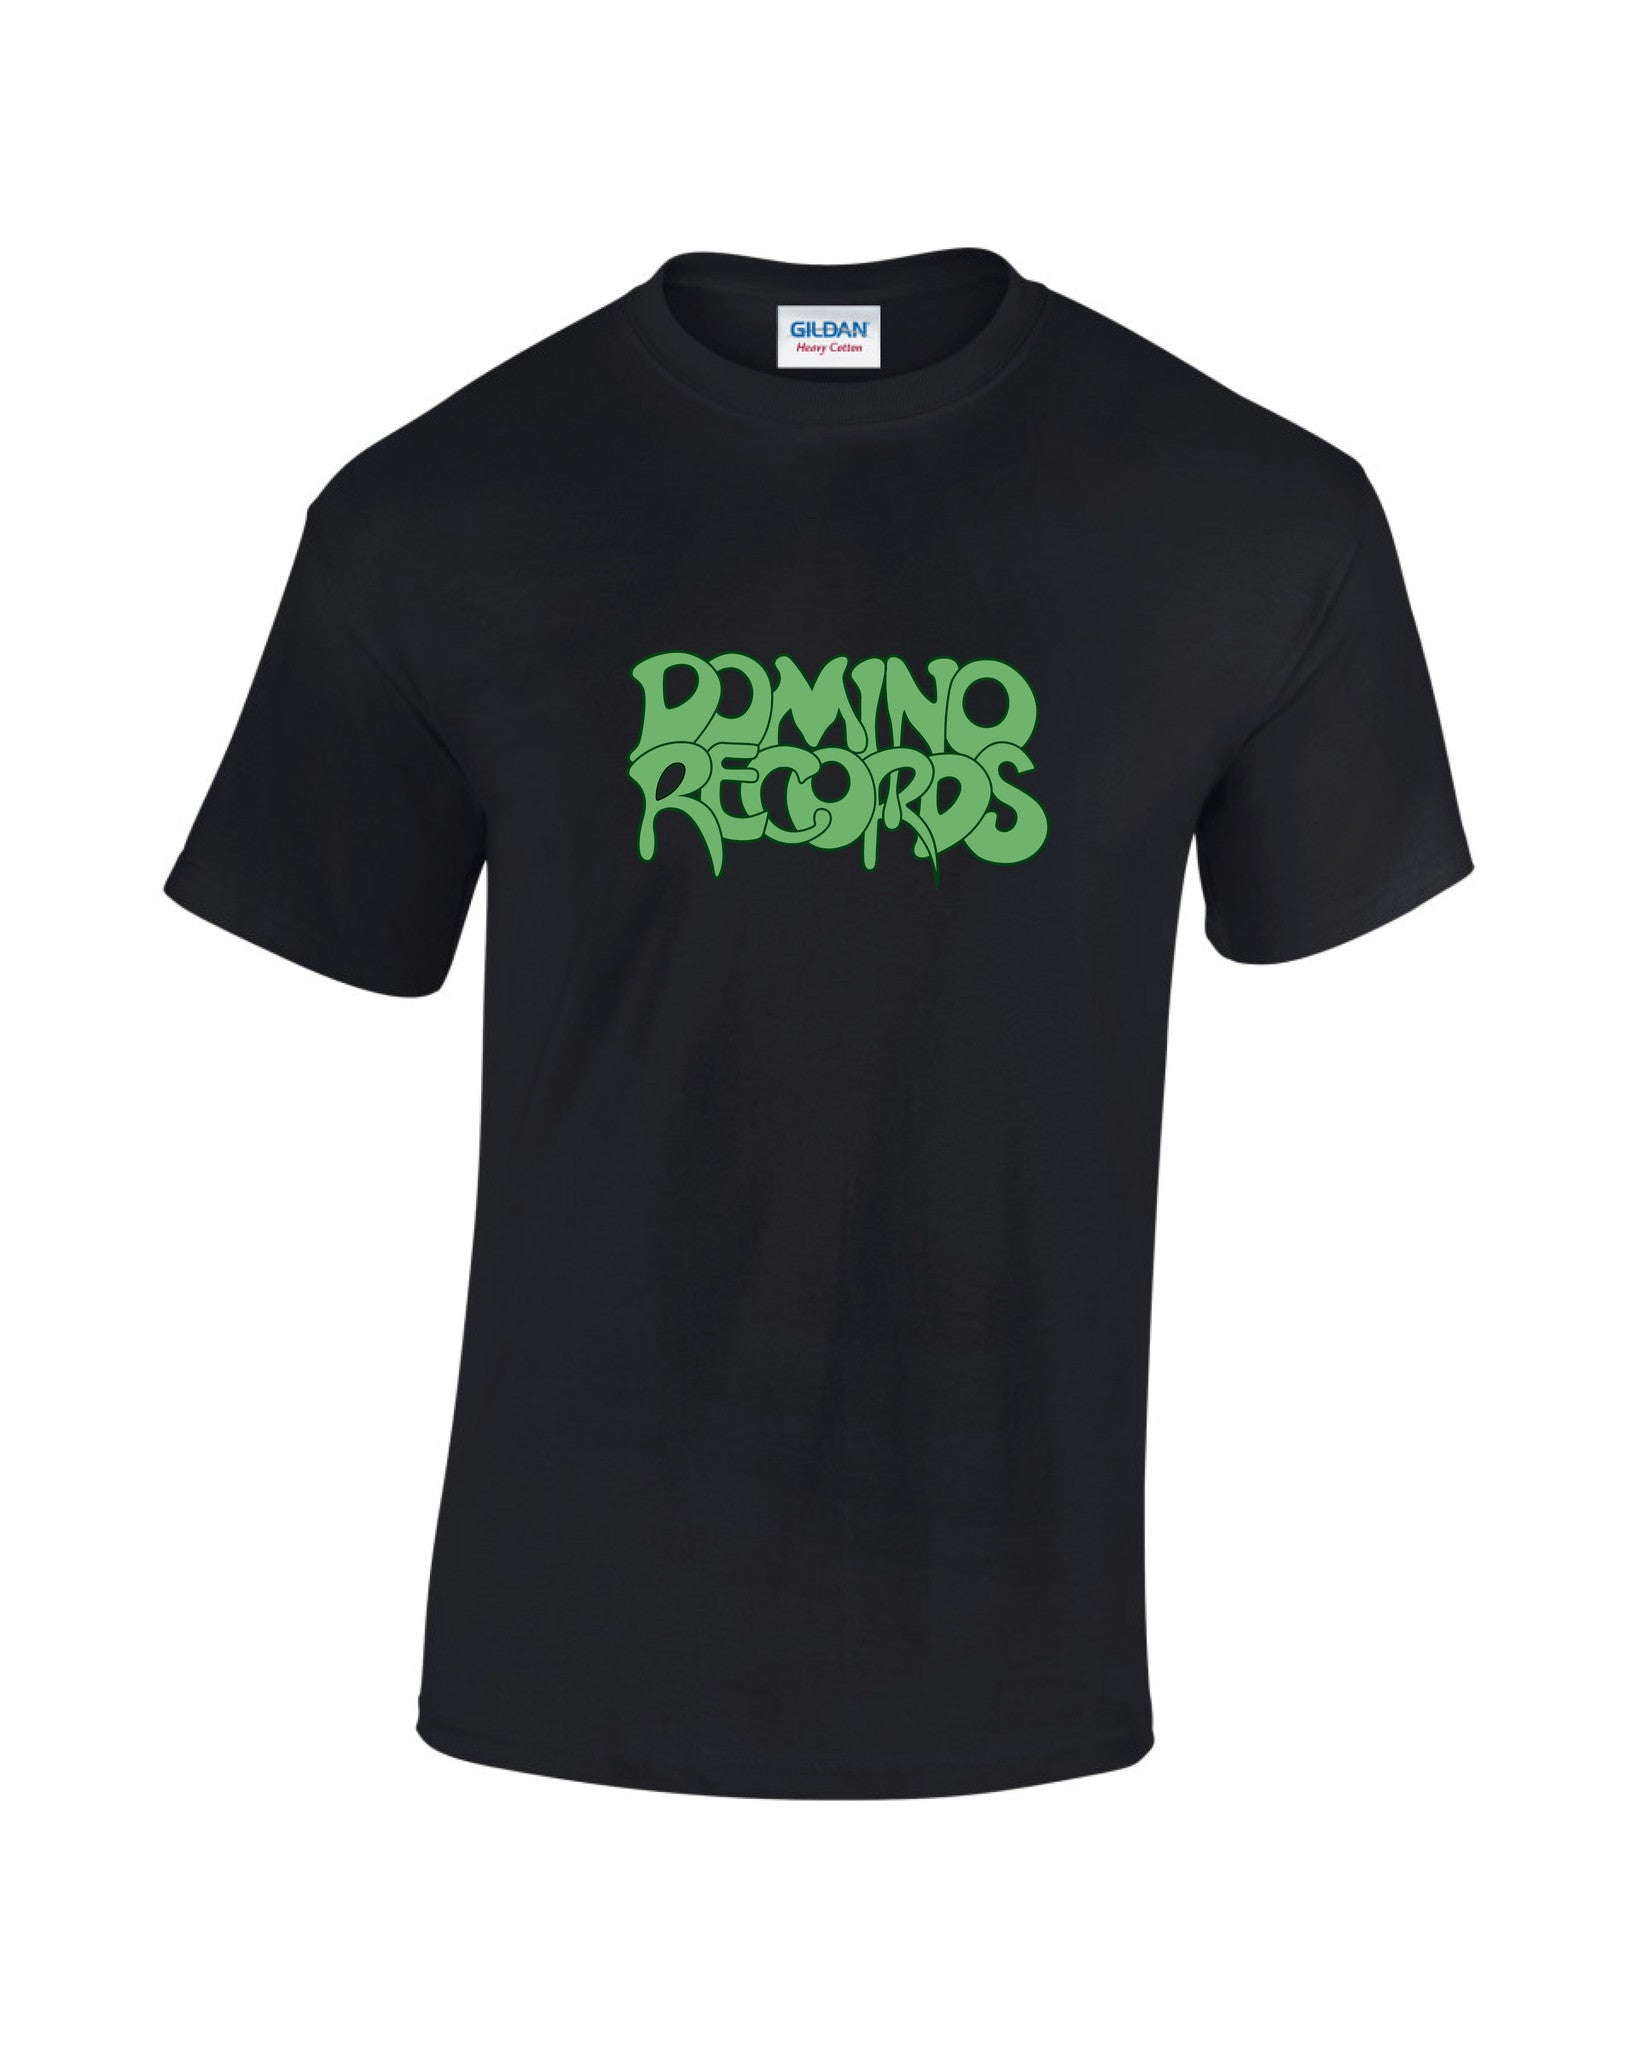 Hillfield Trading Domino Records T Shirt